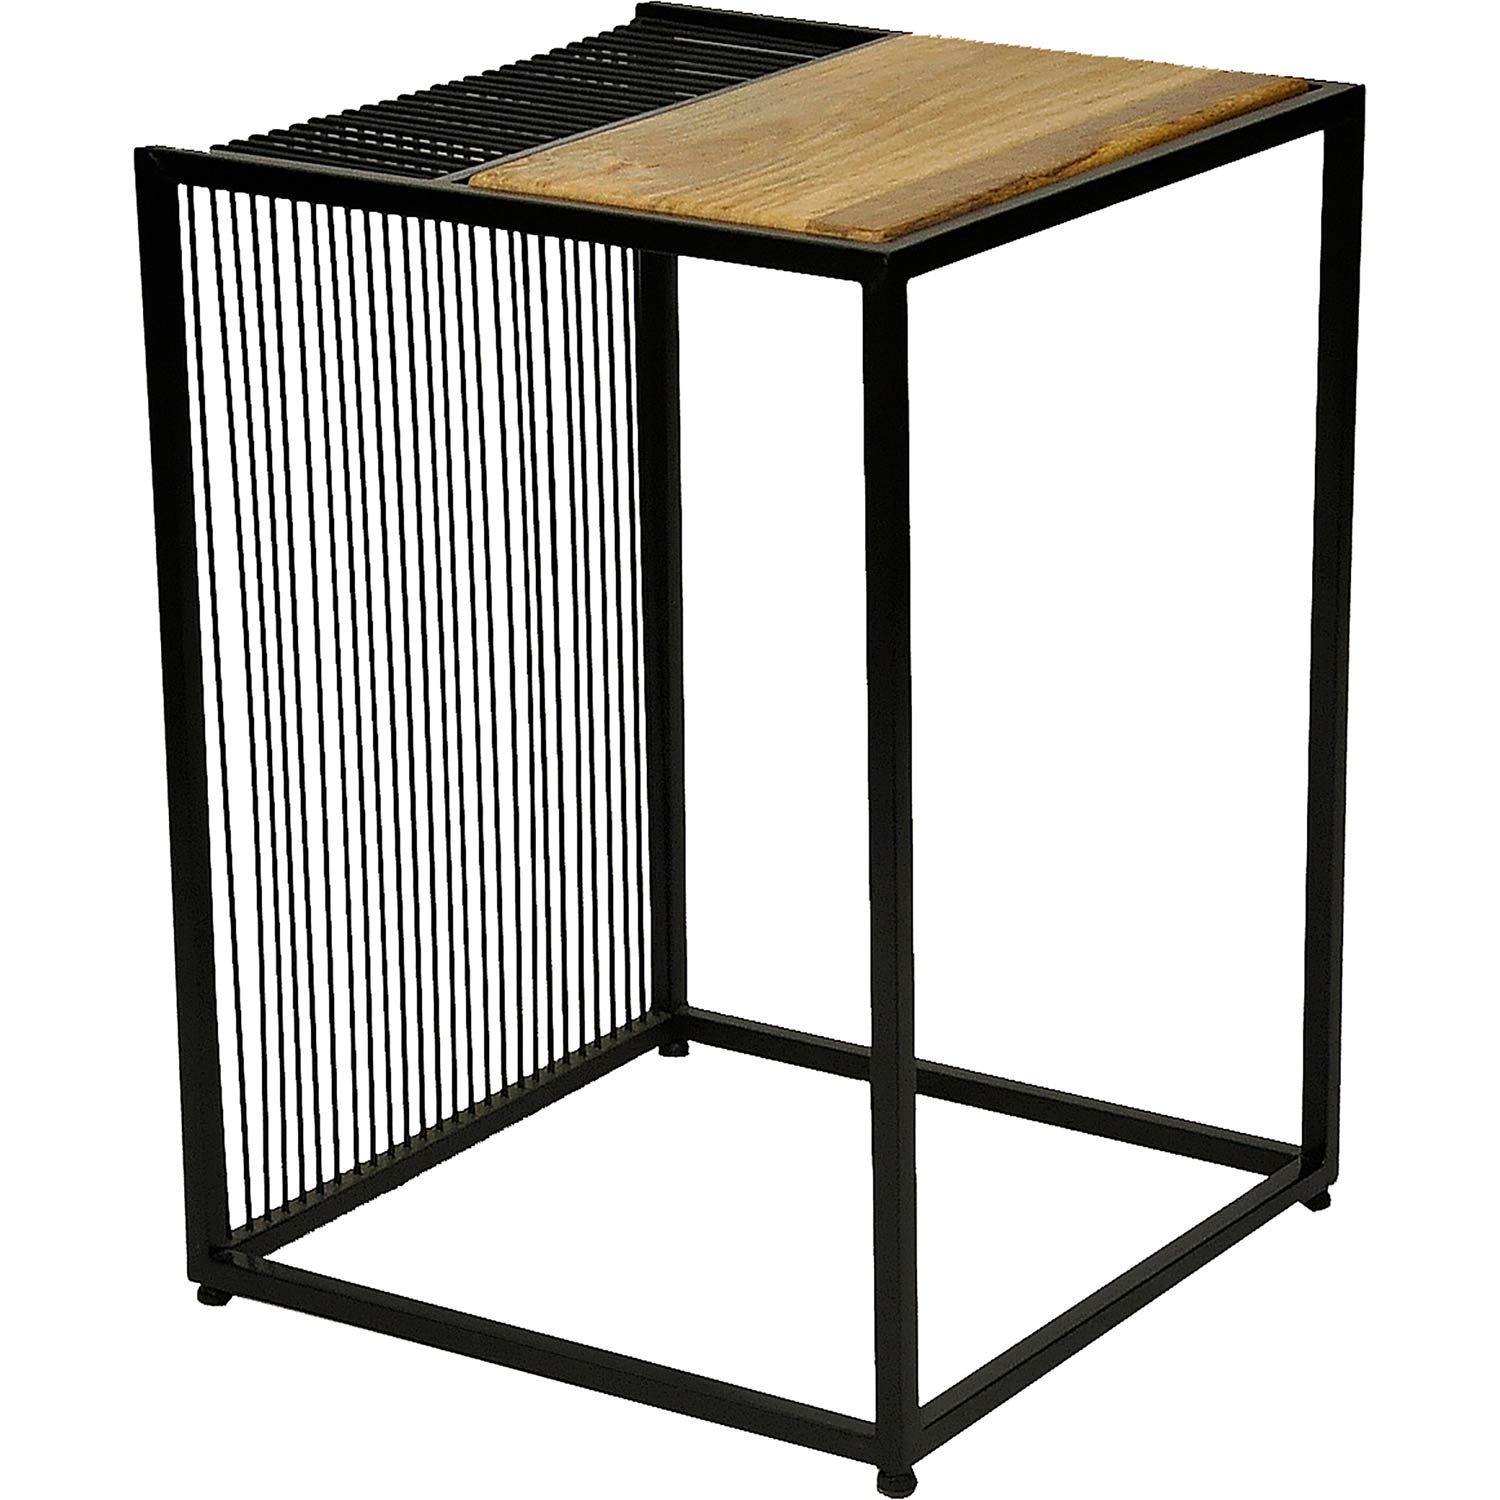 Ren-Wil Rawley Accent Table - Natural/Black